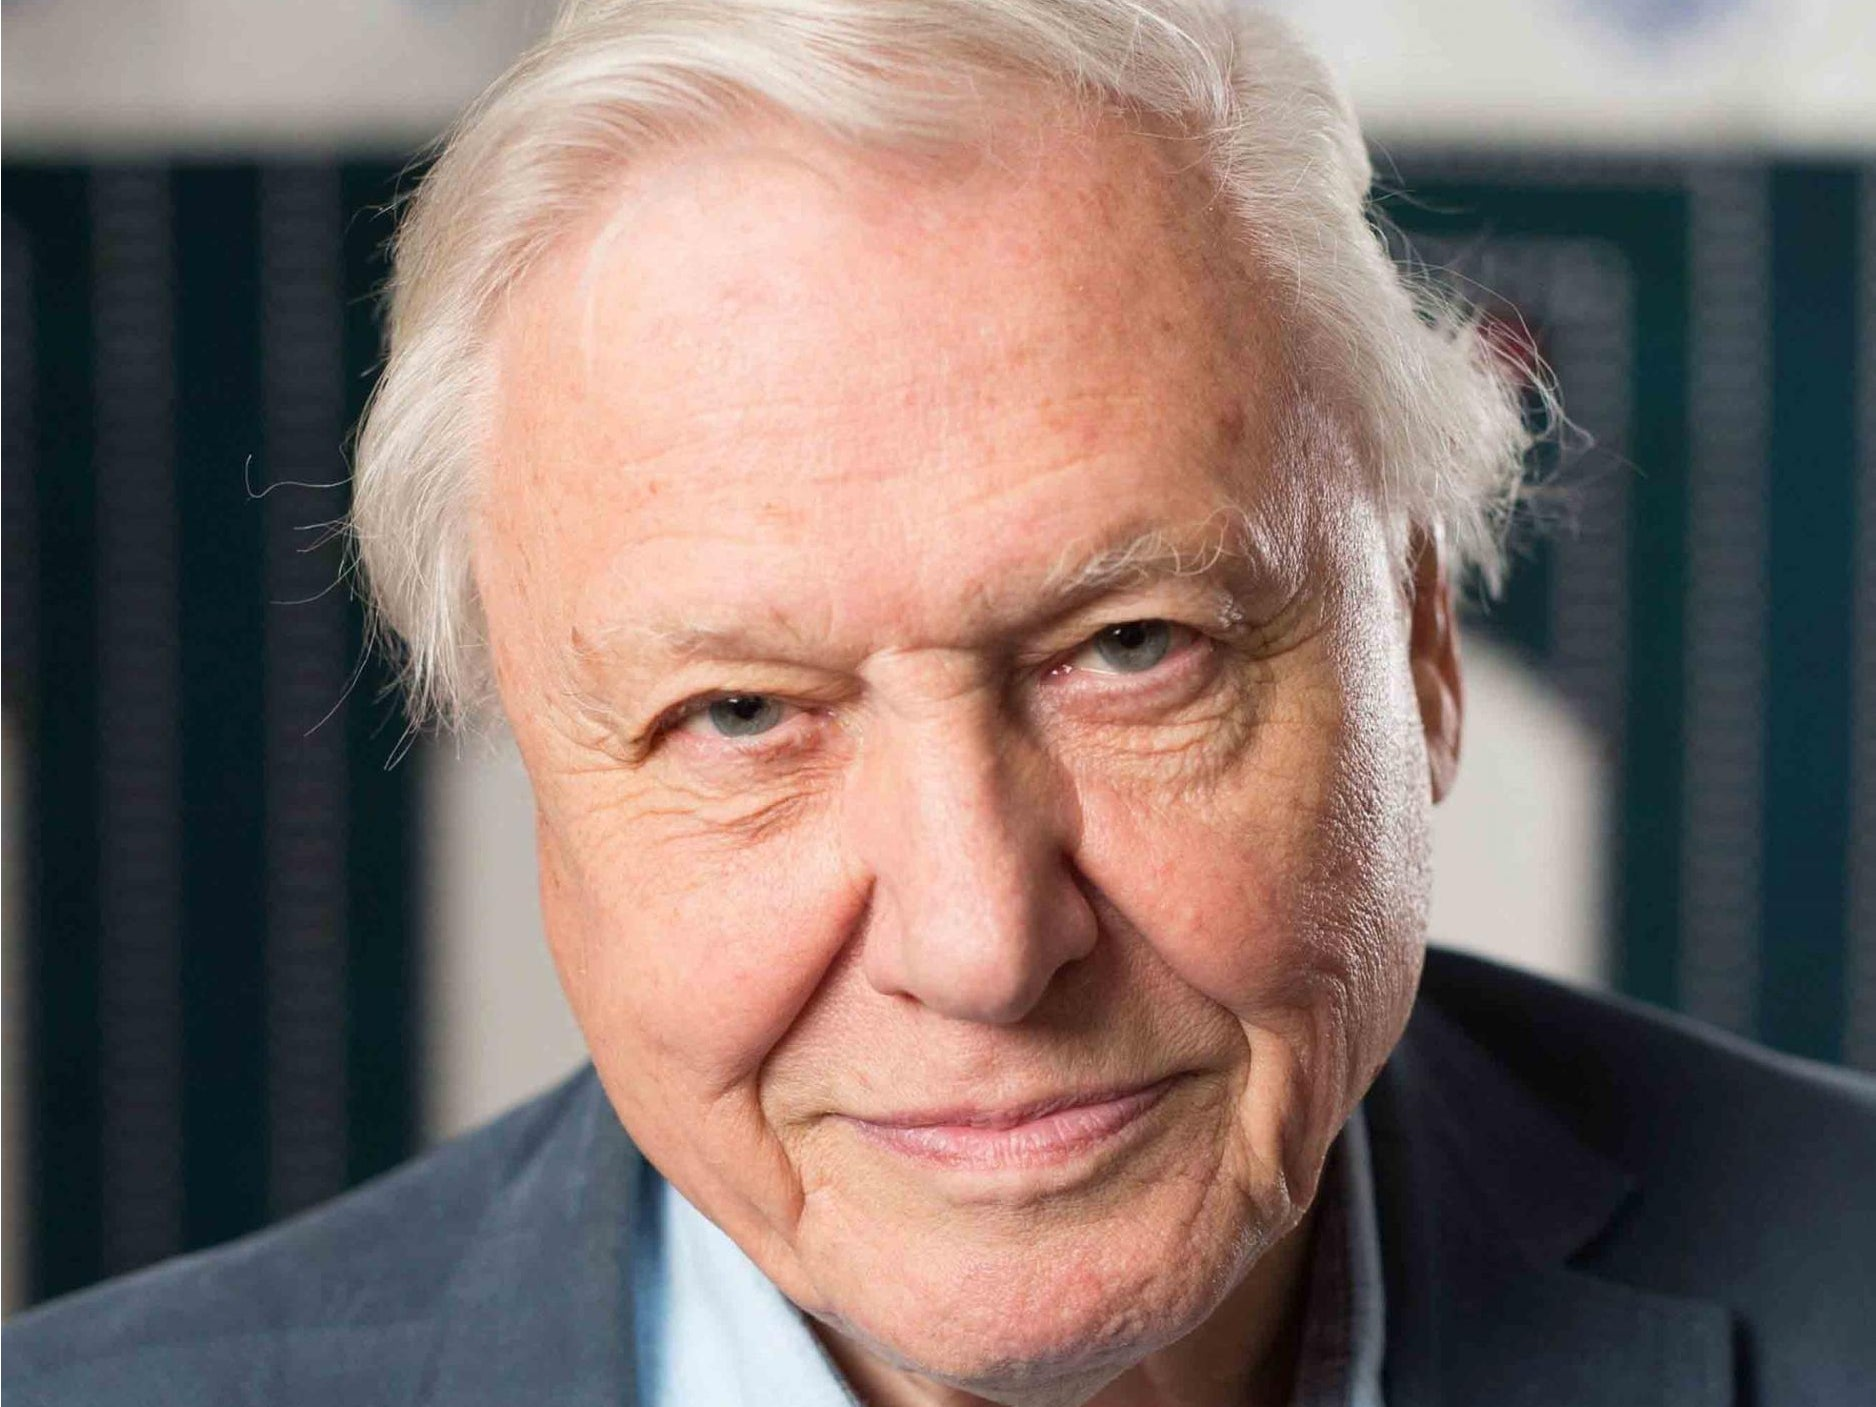 No wonder David Attenborough is angry. Climate science has been telling us the same story for decades